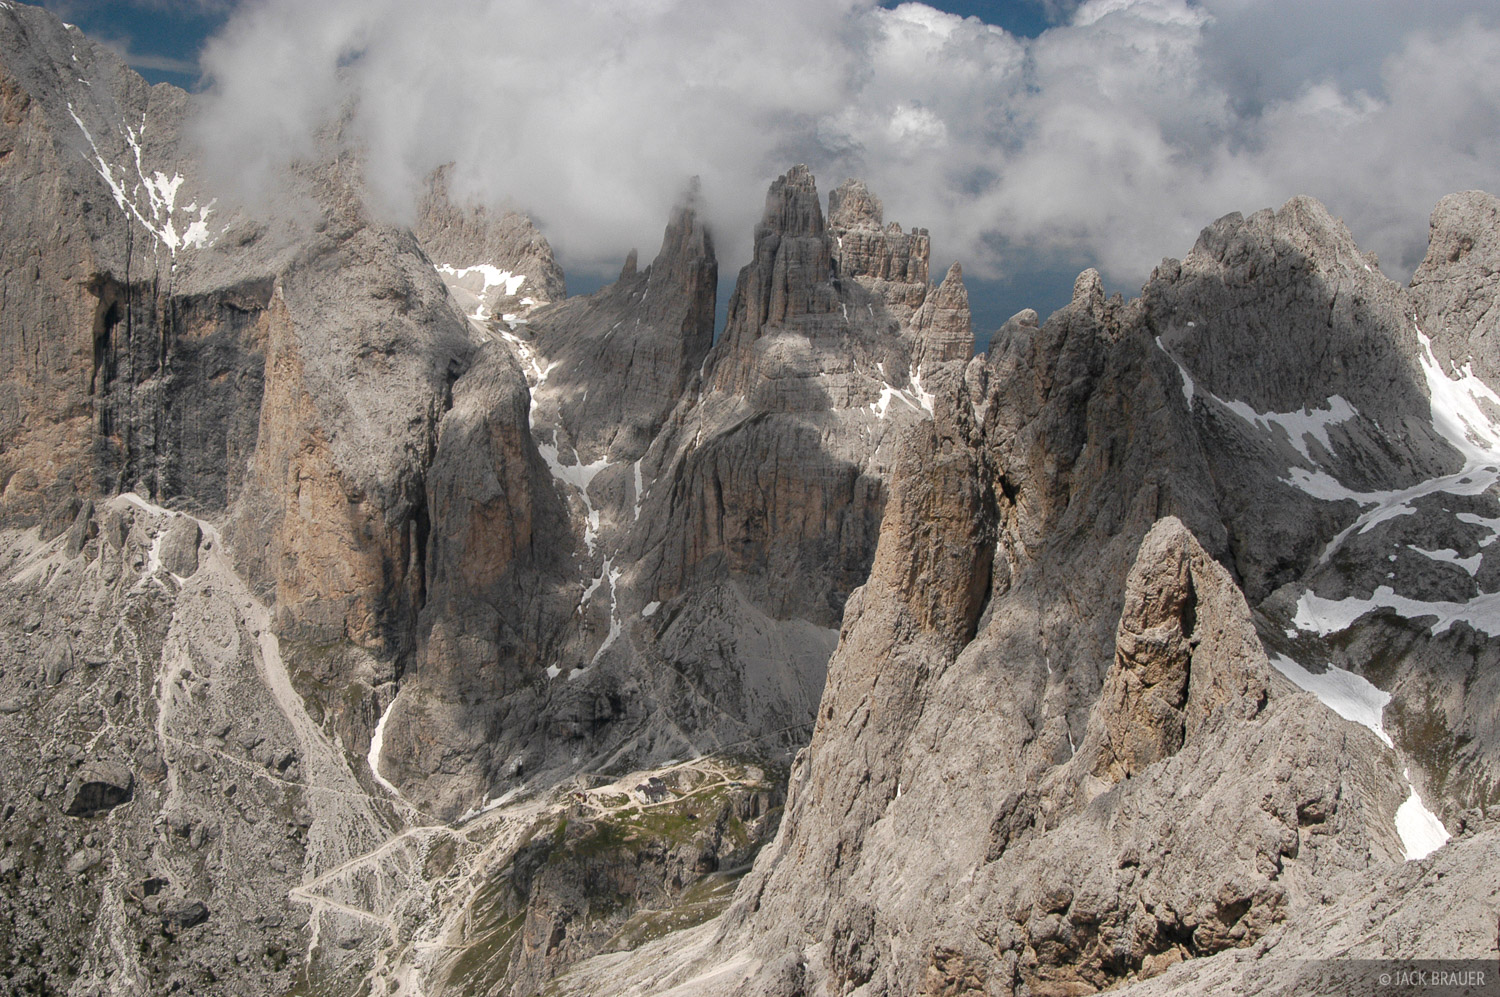 jagged peaks, Torri Vajolet, Catinaccio group, Canazei, Dolomites, Italy, photo